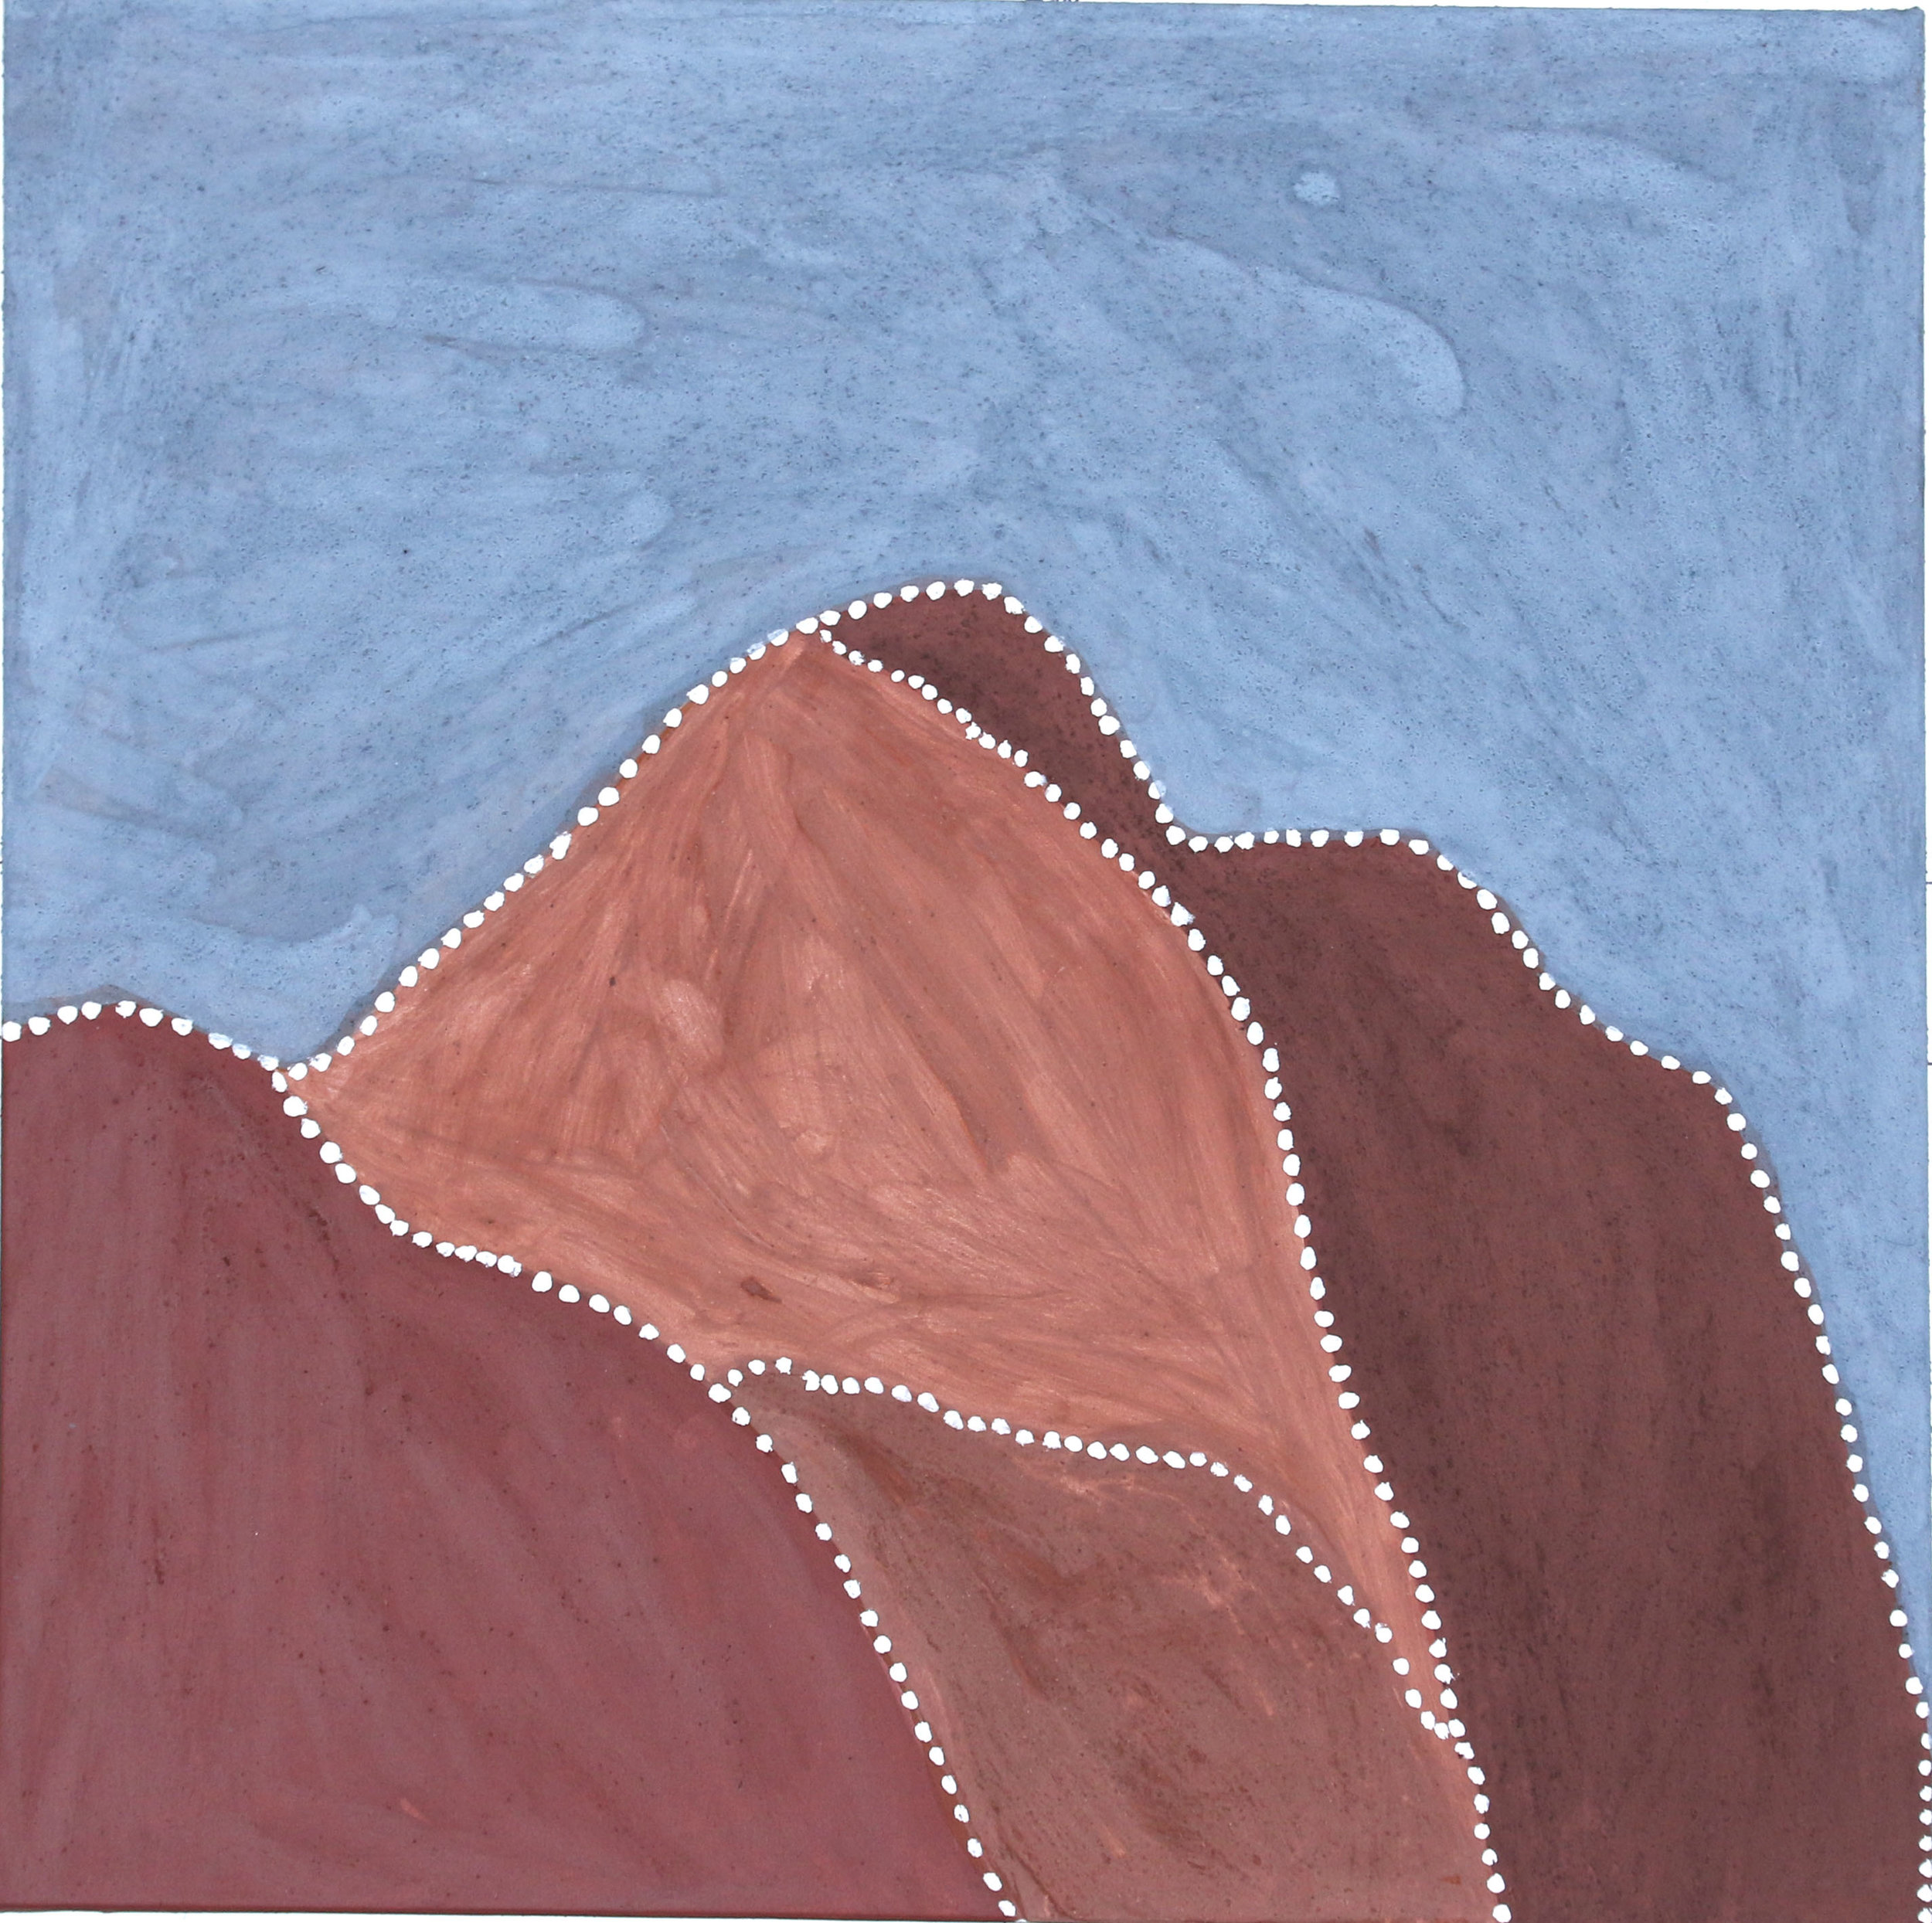 Gordon Barney. Birnoo Country. 2018  natural ochre and pigments on canvas. 90 x 90 cm. $3,000